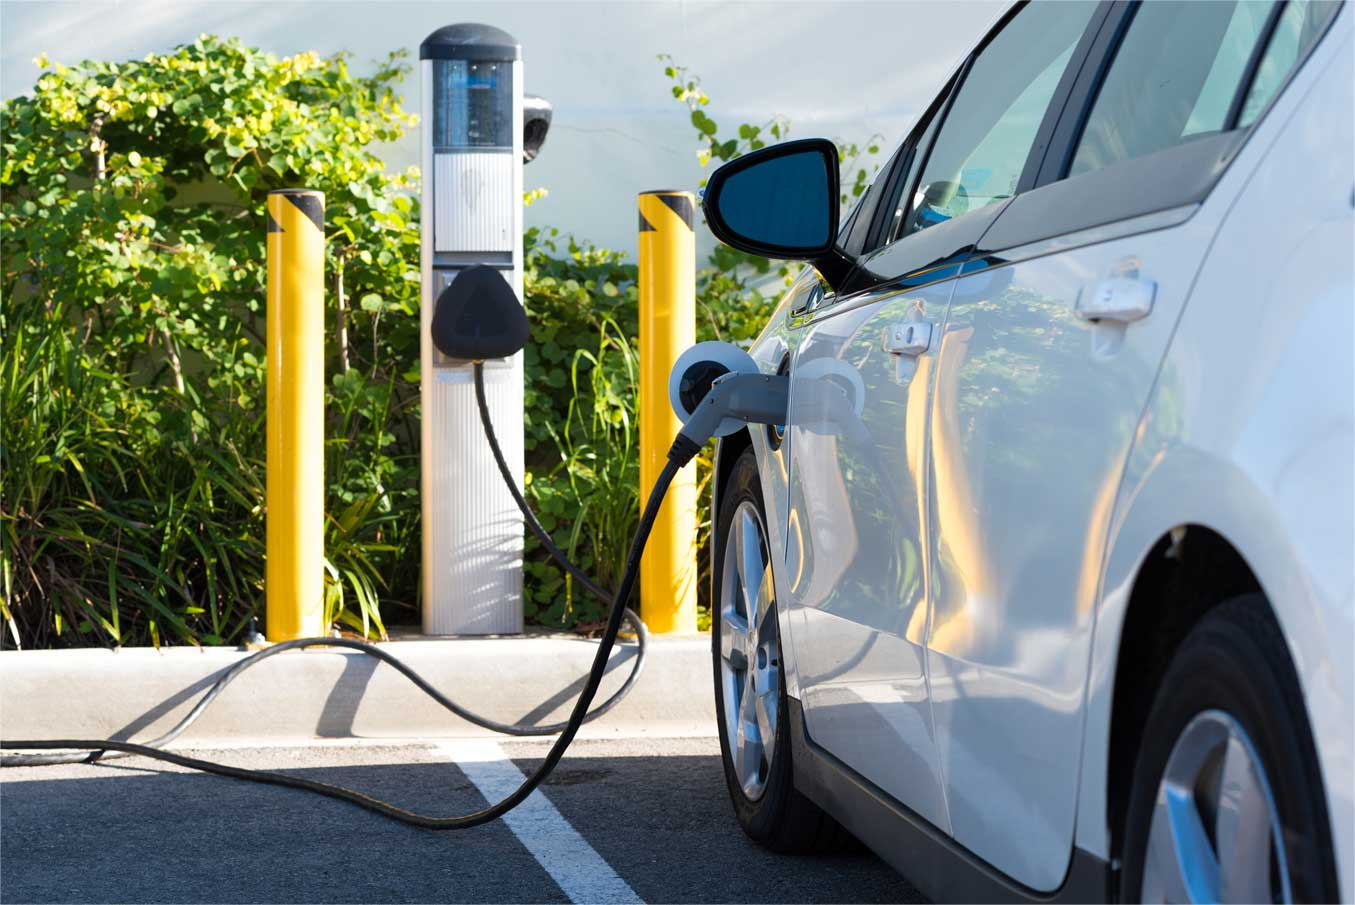 Image - Electric vehicle charging at station